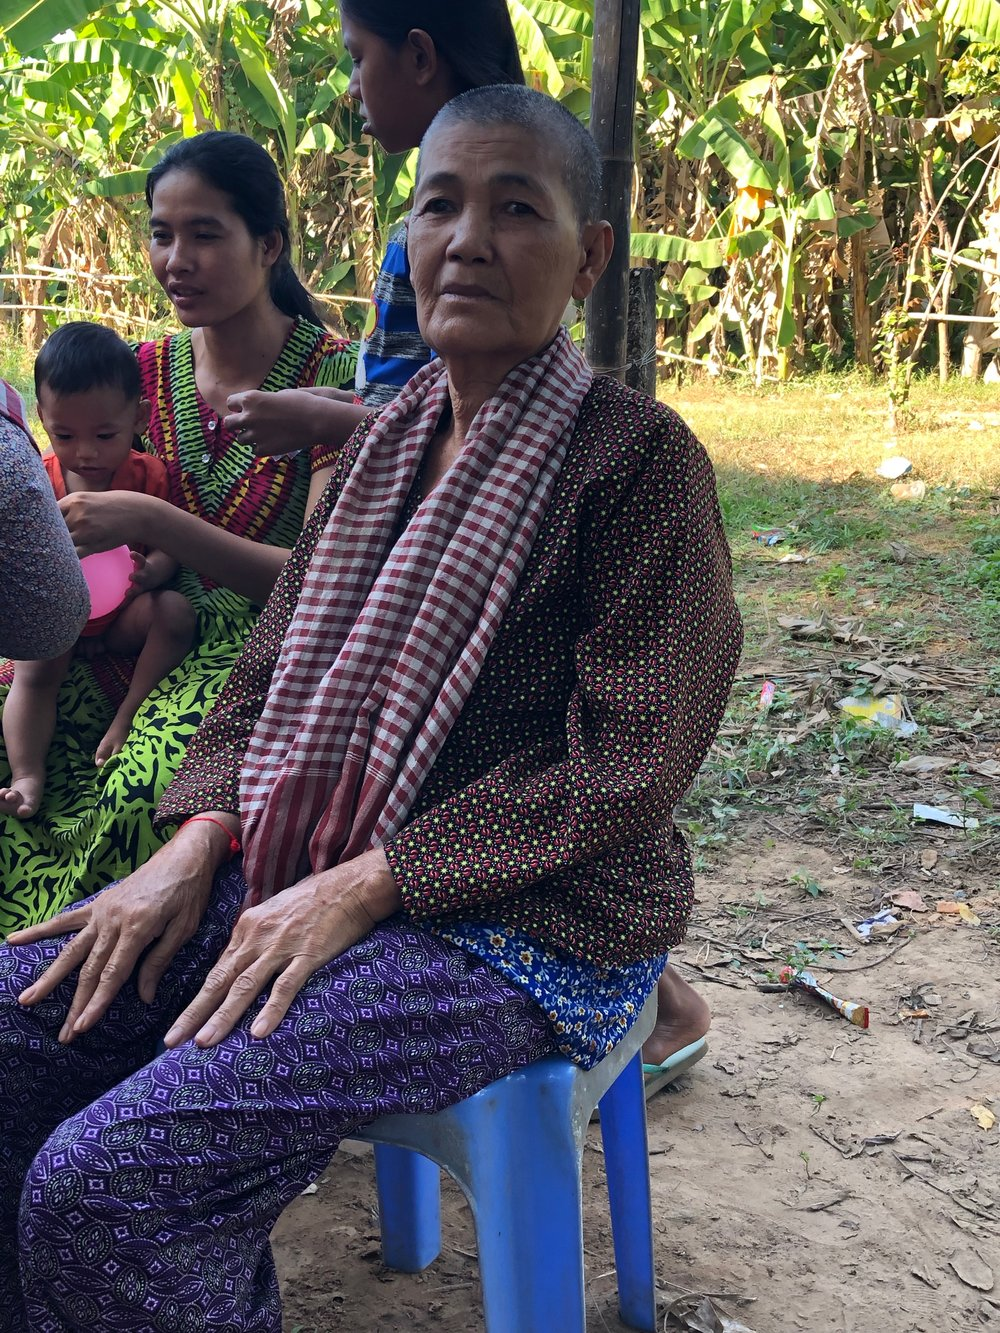 - We visited a church on an island in the Mekong and distributed medicine there. We offered prayer for anyone who was ill or injured. The lady shown in this photo had asked for prayer when we visited this village the year before. She was close to death and was told she only had a short time to live. We prayed for her last year. Two days after we left the village last year she was totally better. It was SO great to see her this year fit and well and very thankful for her healing.